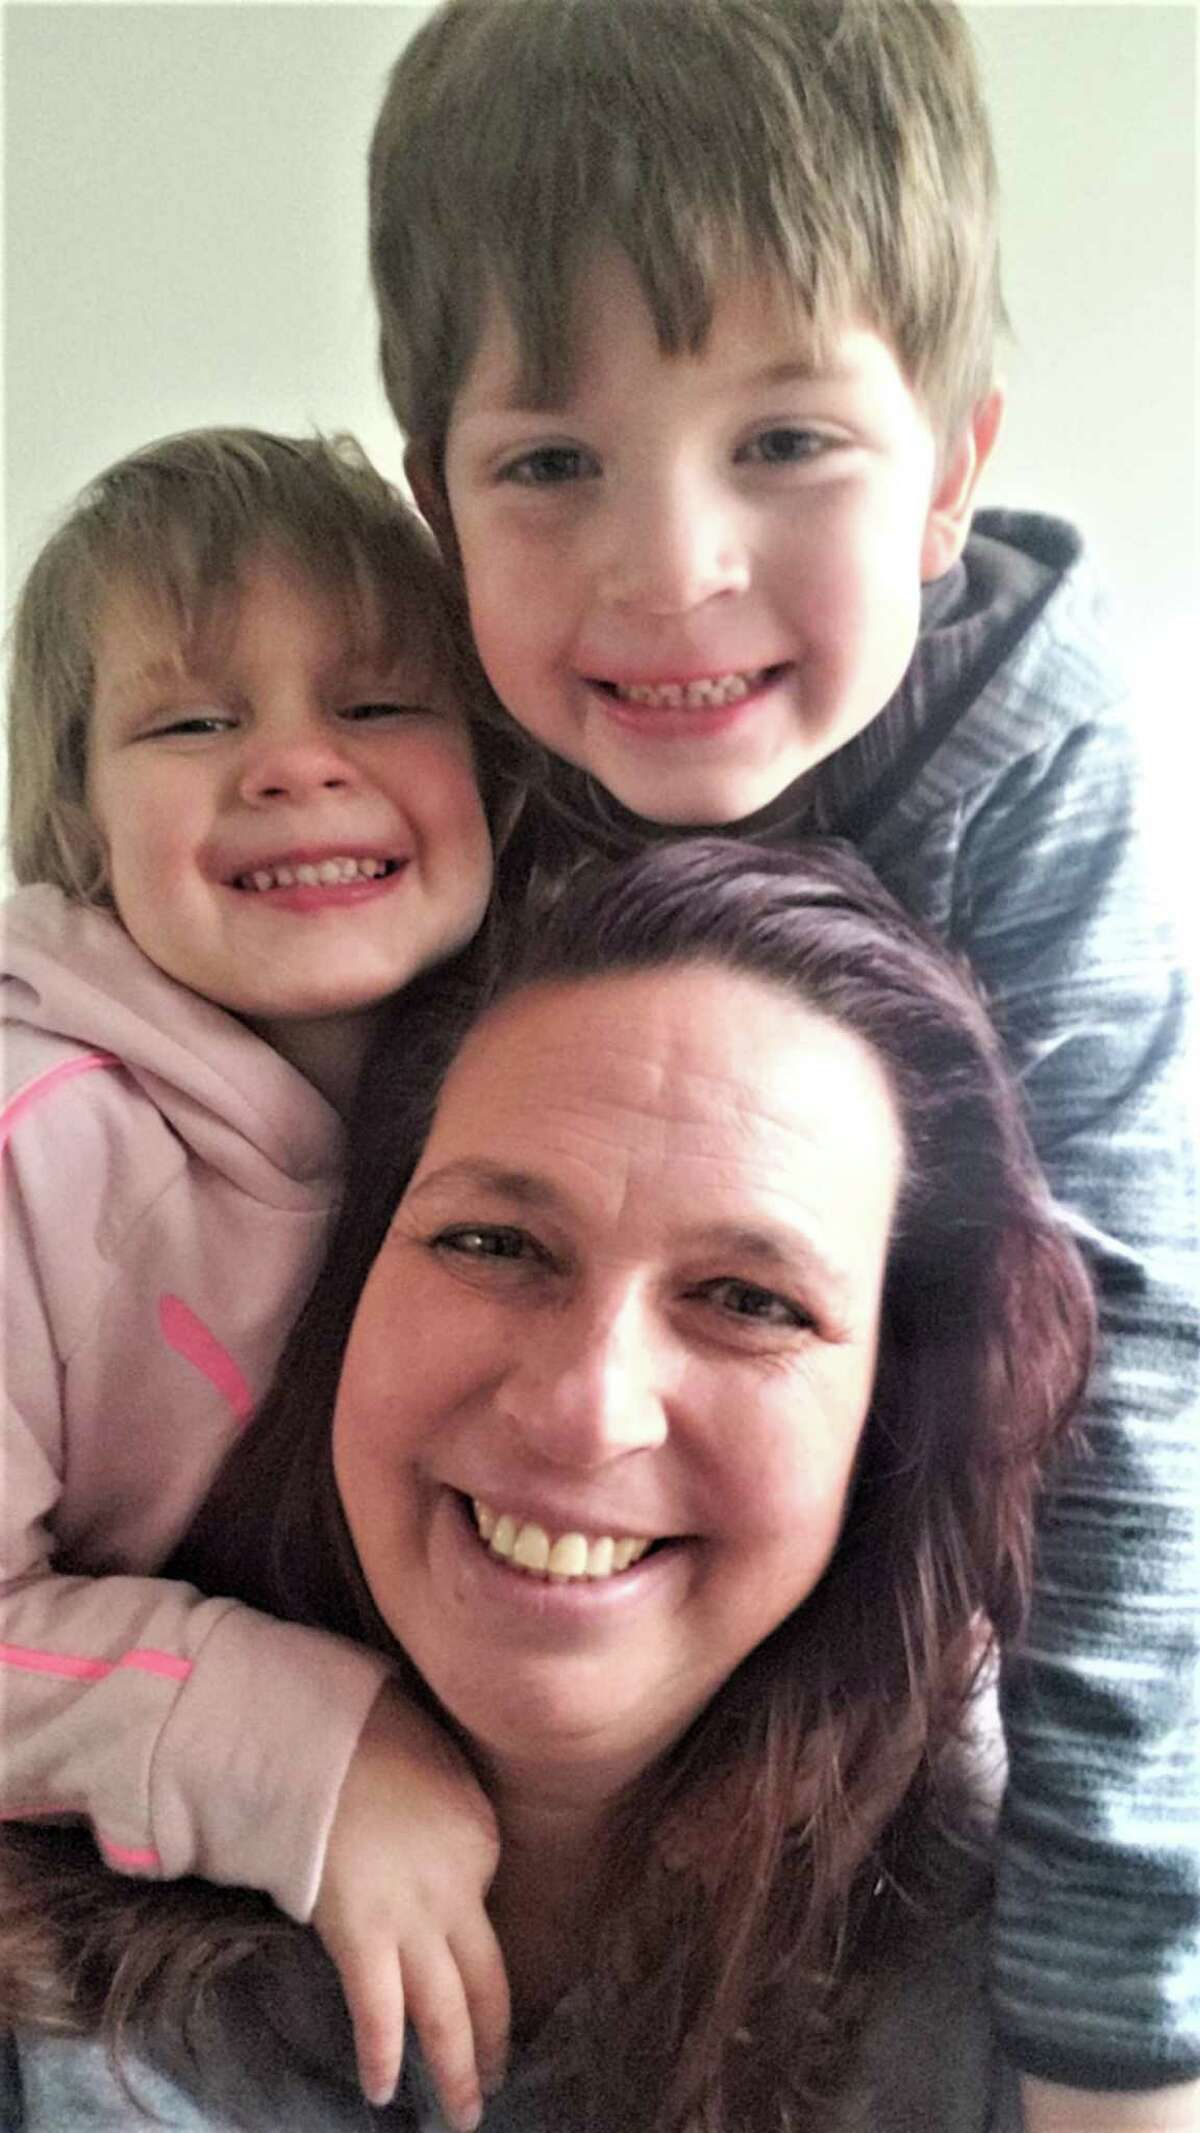 Melysa D'Amato of Portland, a phlebotomist at Midstate Medical Center in Meriden, discovered she had a brain tumor on her optic nerve after a car accident in November. Her co-worker has set up a GoFundMe drive with a $10,000 goal to help D'Amato with living expenses. She is shown with her children Taygan, 3, at left, and Brayden, 5, at top.